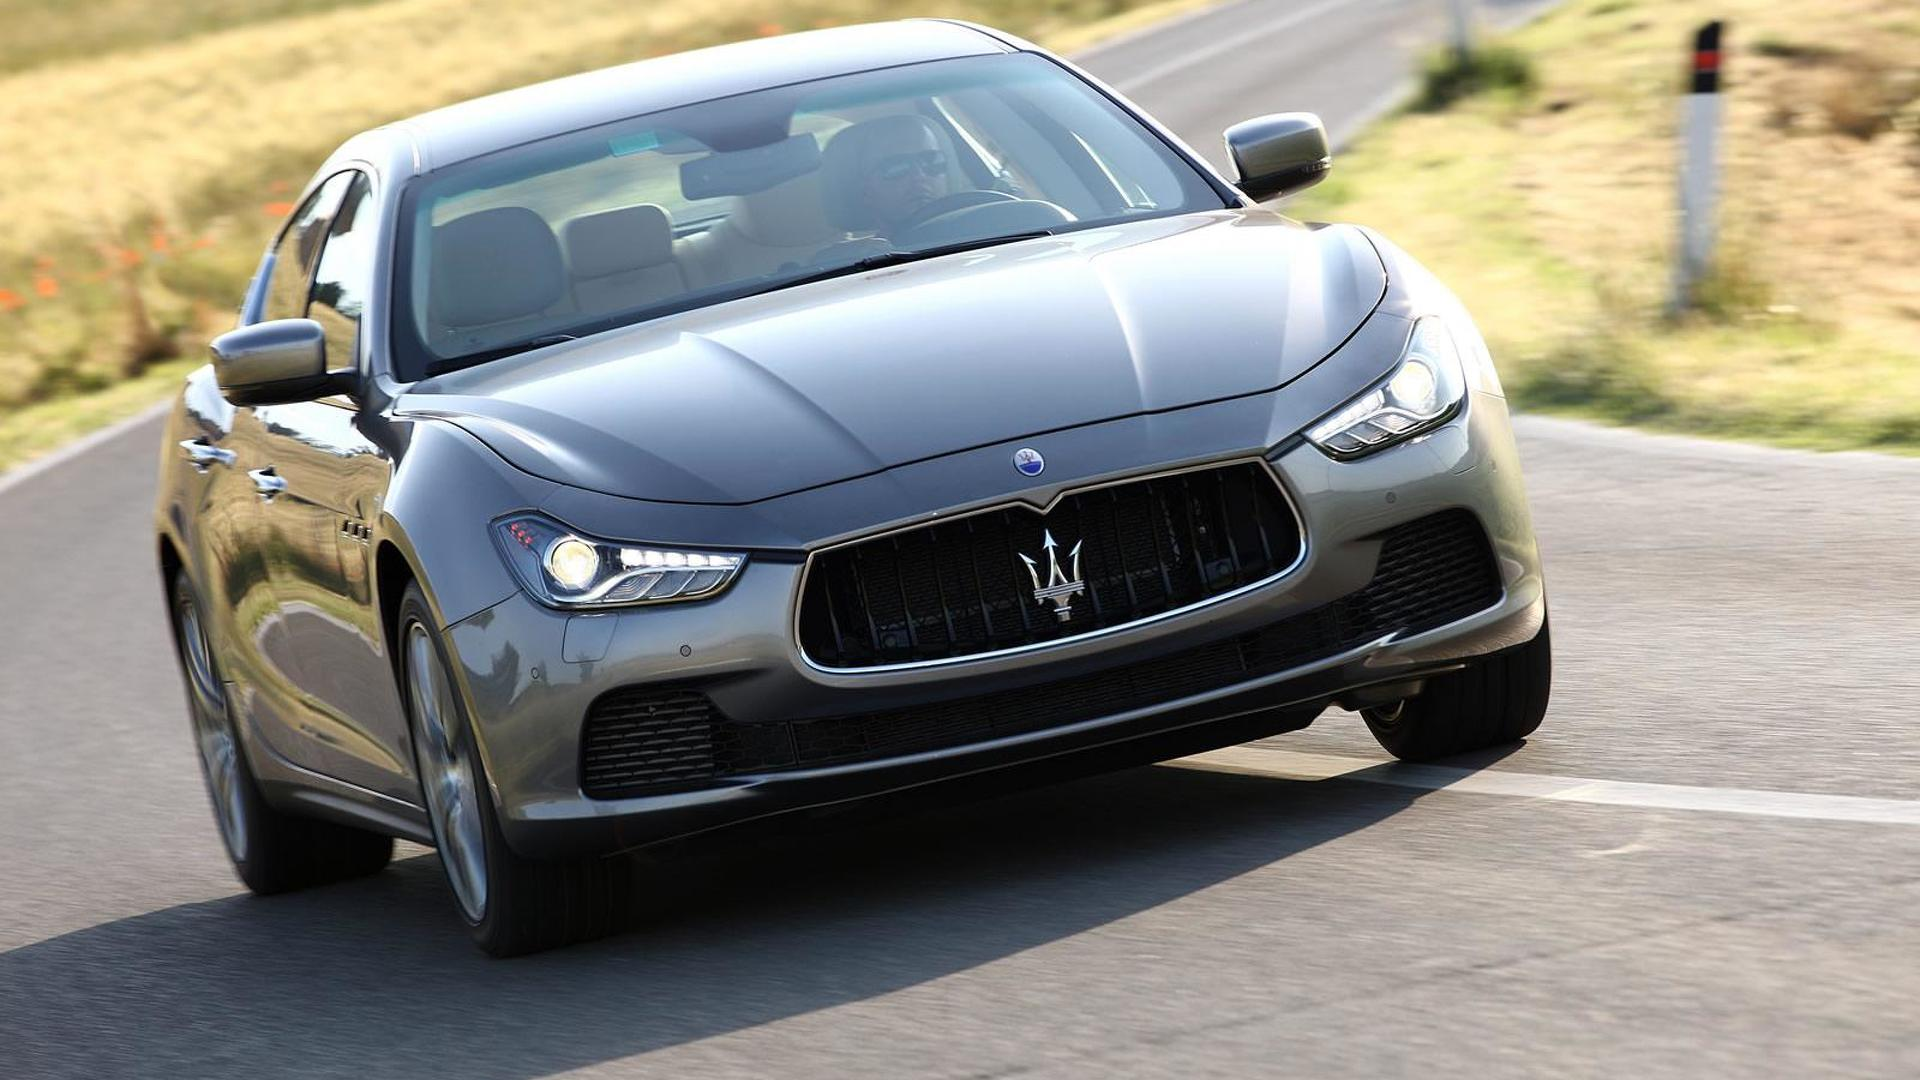 Maserati slows production as Ghibli and Quattroporte demand weakens